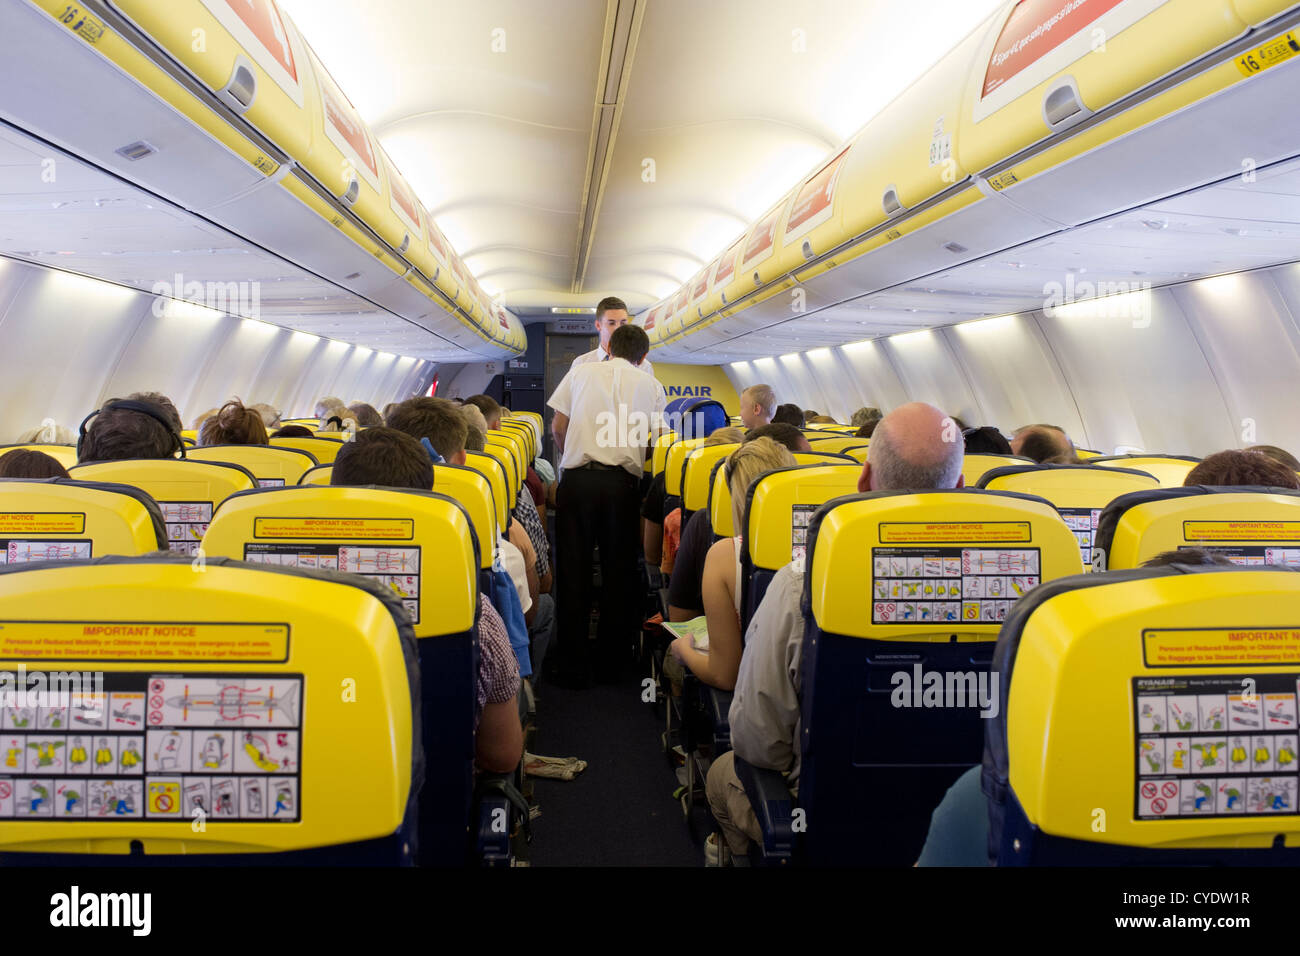 Ryanair Plane Cabin Interior Stock Photo Royalty Free